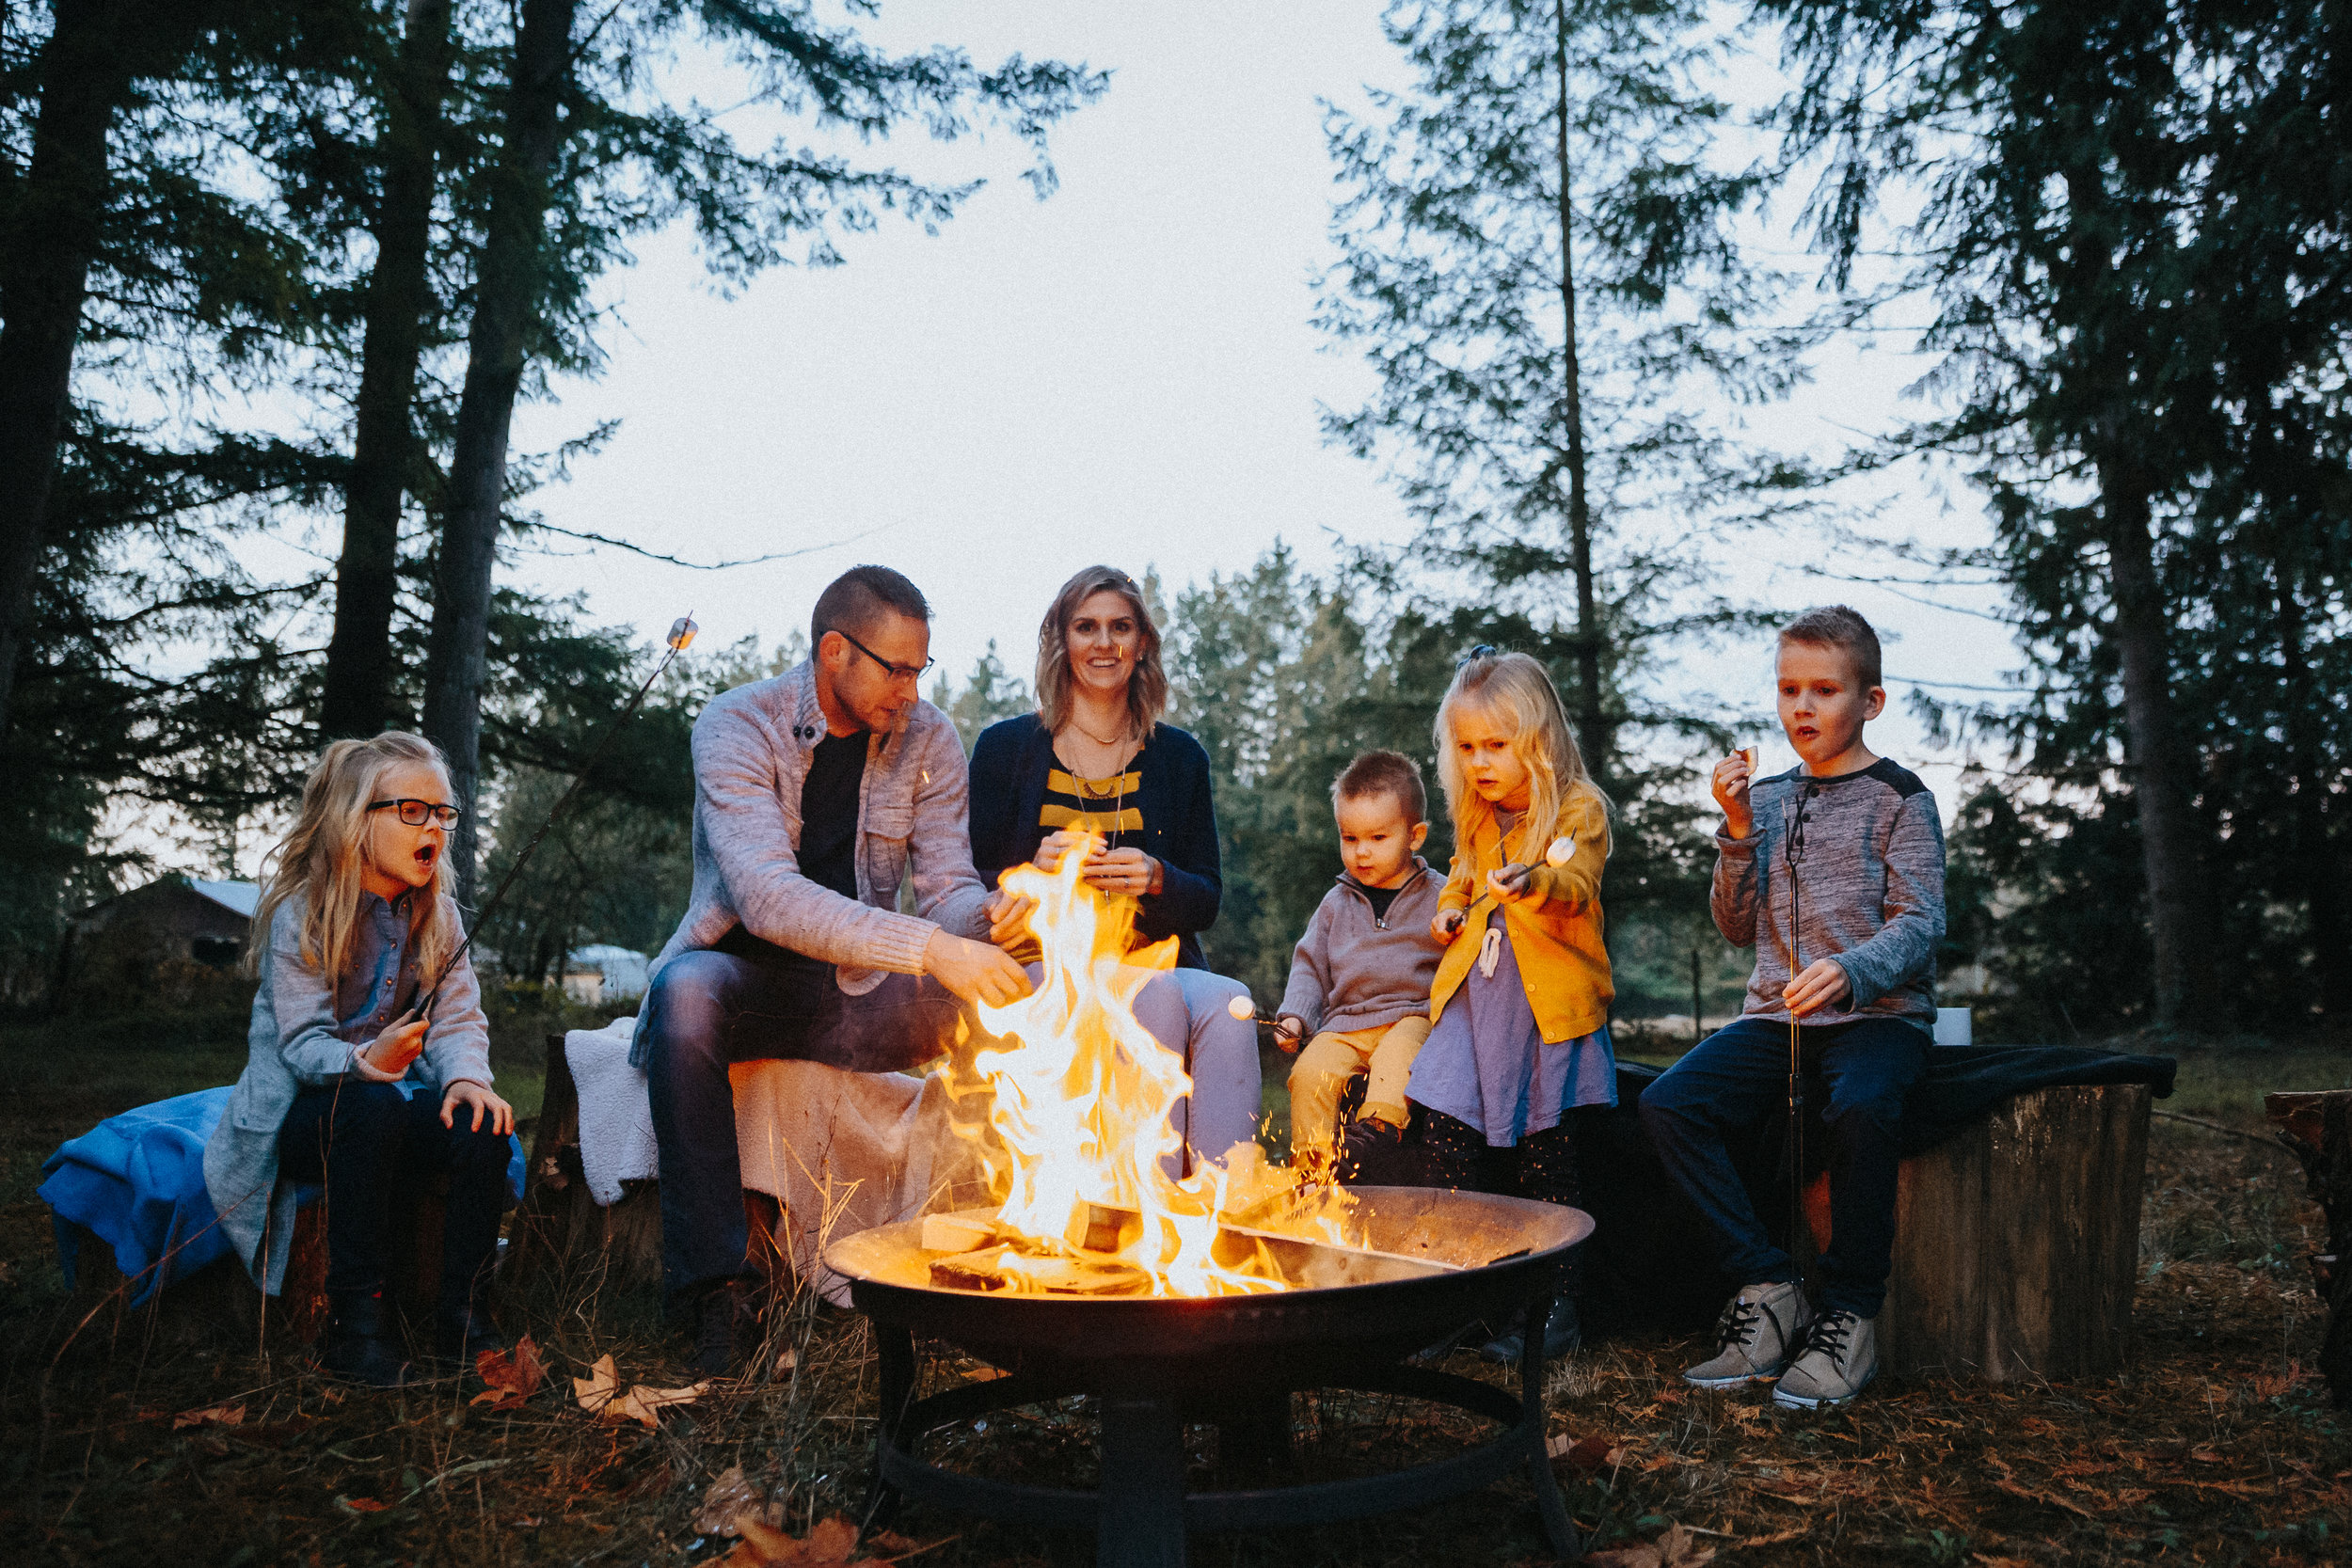 Family of 6 sitting around the fire, large family.Backyard Family Roasting Marshmallows, 4 kids, navy blue, mustard yellow, jean . Real moments, real memories. sticky fingers, documentary lifestyle photography by Mimsical photography, Fraser Valley, British Columbia, Langley, Vancouver.